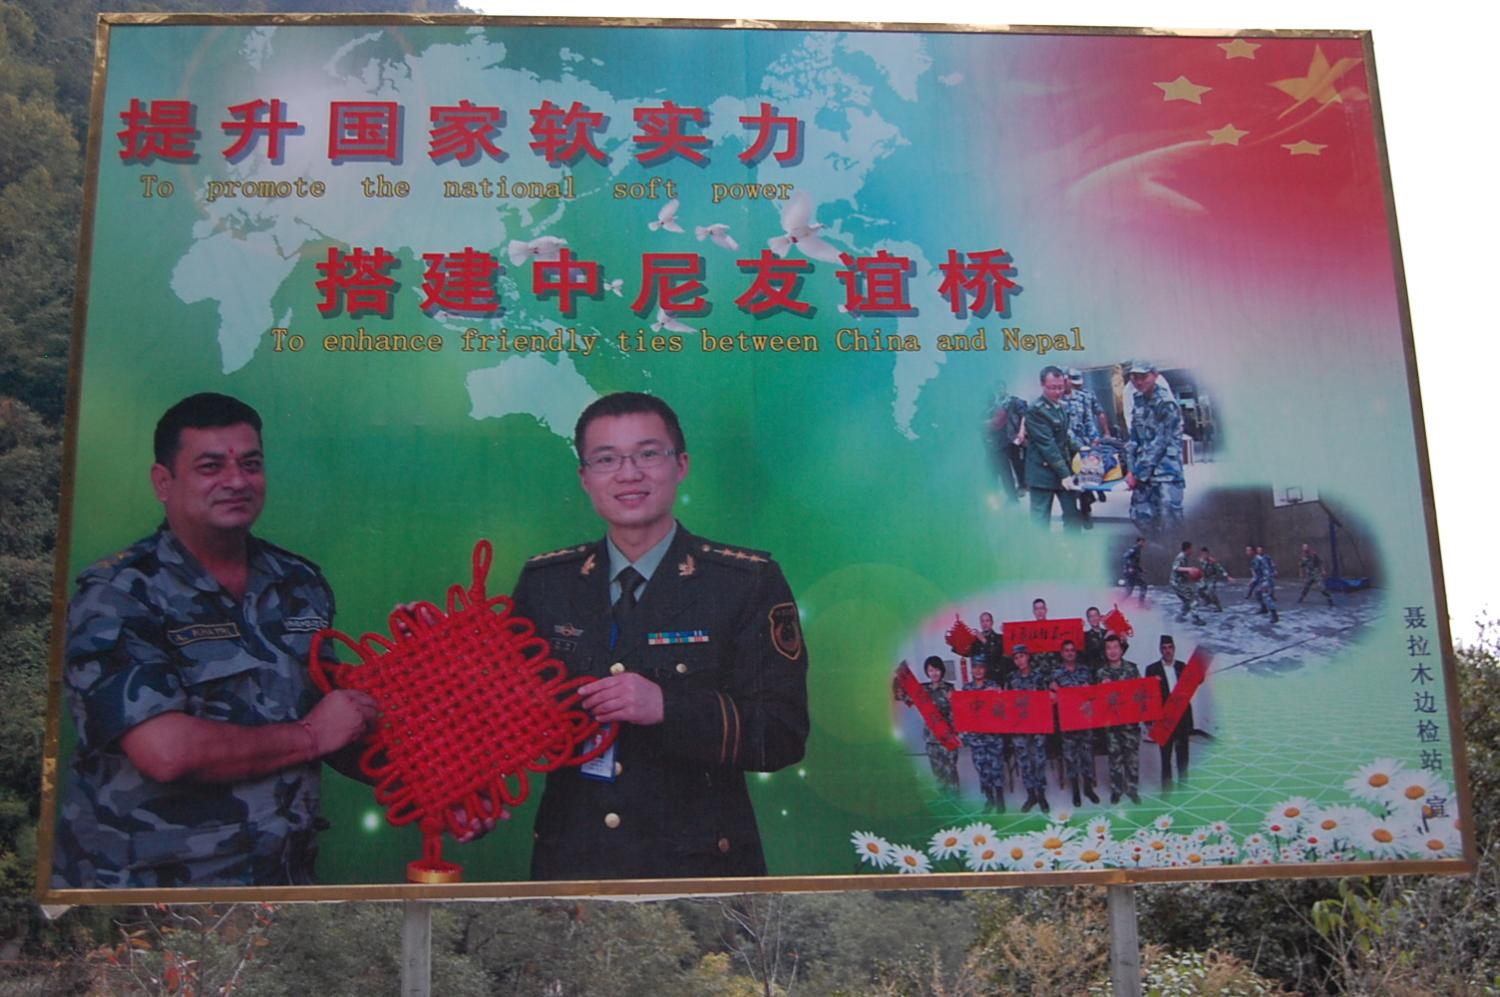 """""""To promote national soft-power, to enhance friendly ties between China and Nepal"""""""